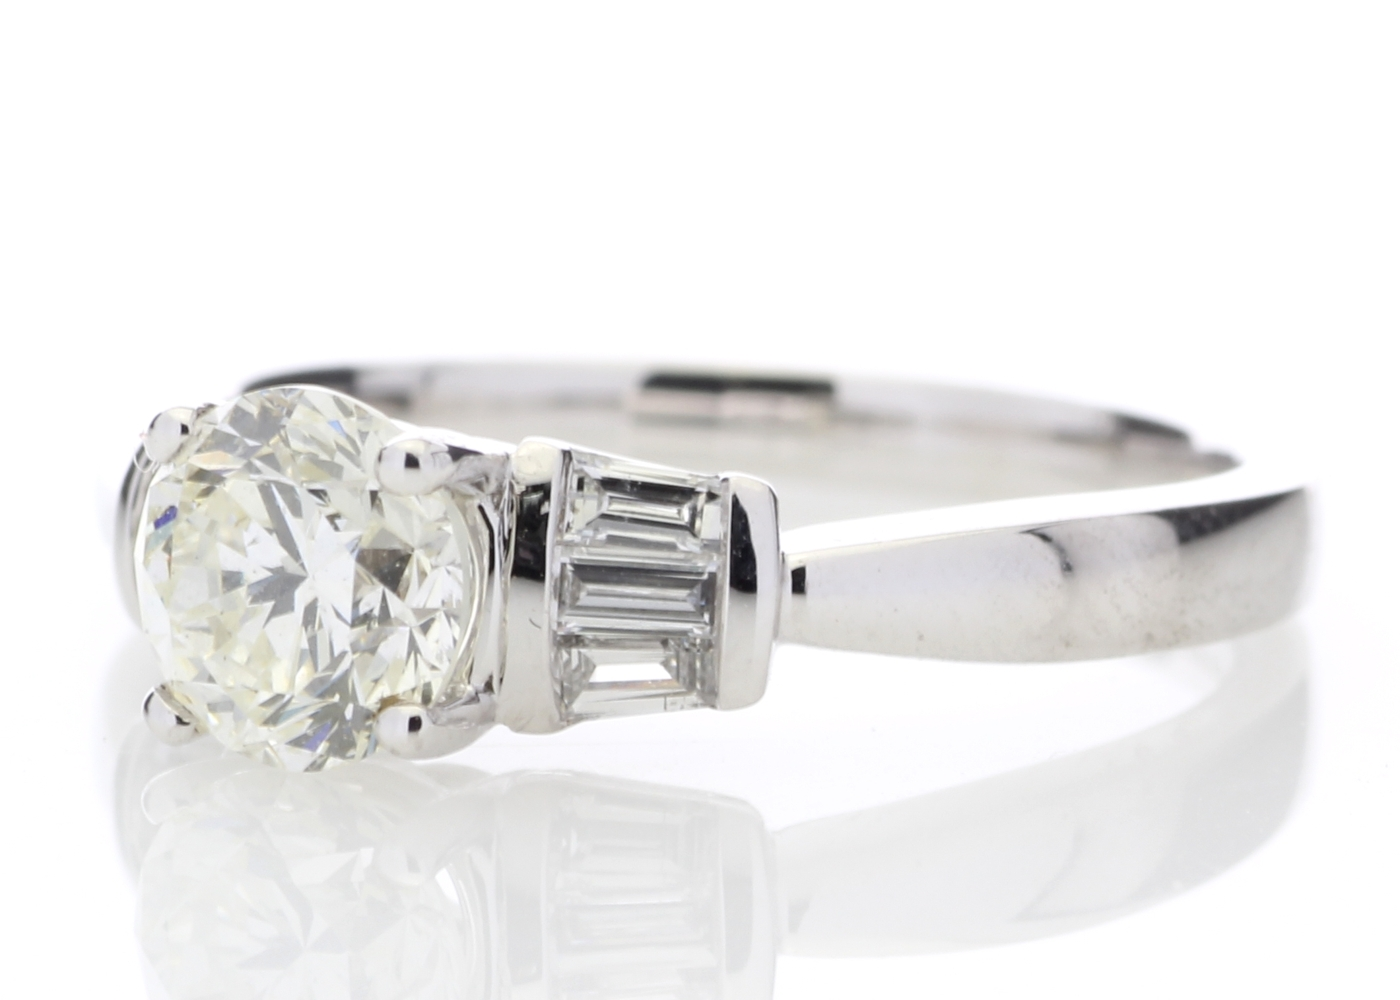 18ct White Gold Baguette Set Shoulders Diamond Ring 1.26 Carats - Image 2 of 4